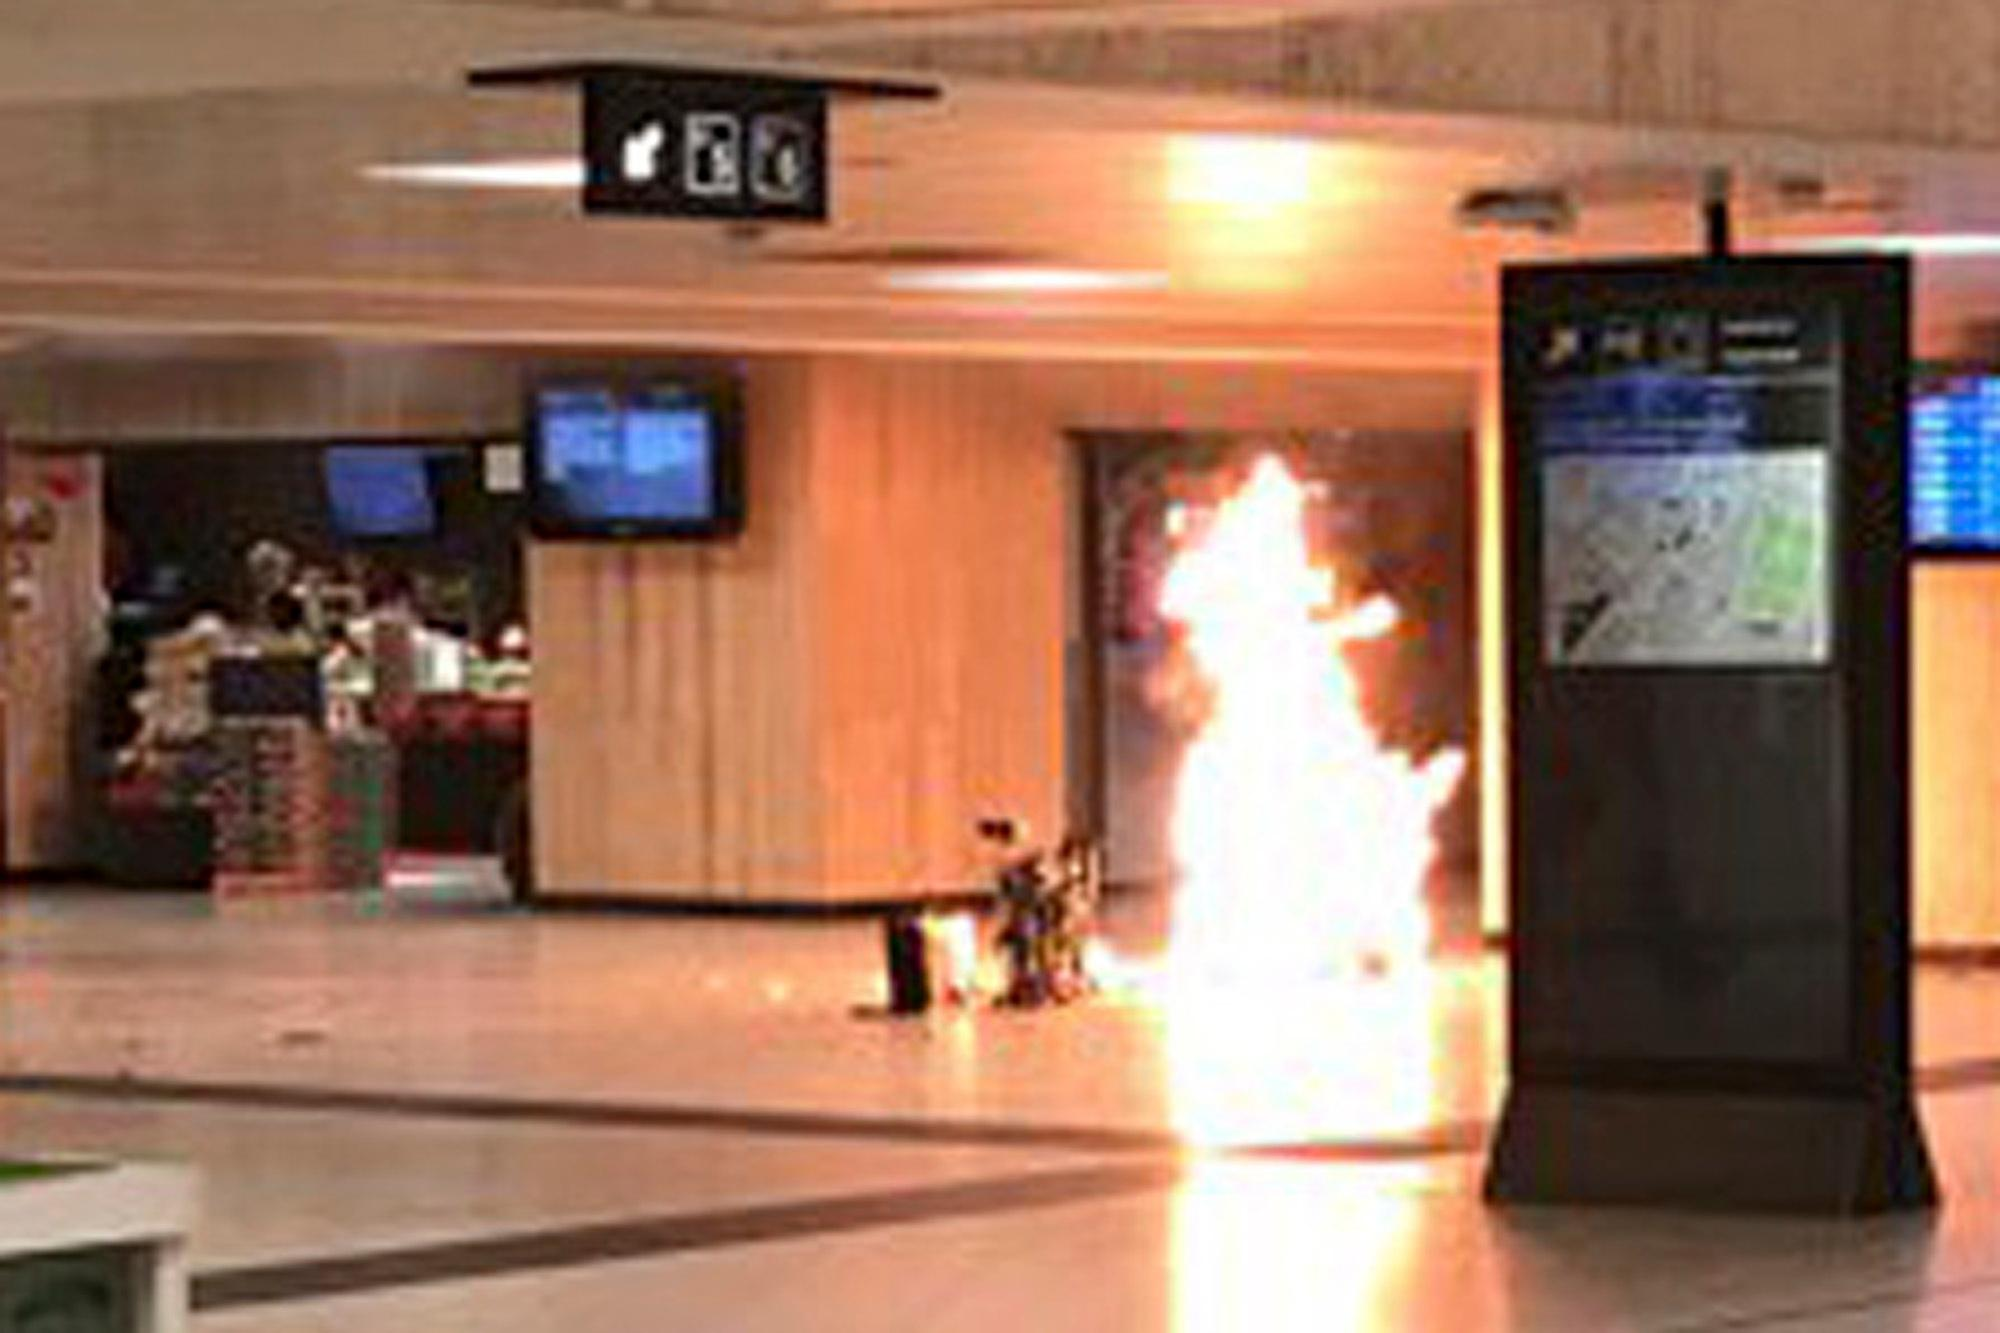 "In this June 20, 2017 photo a man blows up an explosive device in the station in Brussels. The man was shot by soldiers afterwards in what prosecutors are treating as a ""terrorist attack."" He lay still for several hours while a bomb squad checked whether he was carrying more explosives and later died. No one else was hurt. (Remy Bonnaffe via AP)  MANDATORY CREDIT"